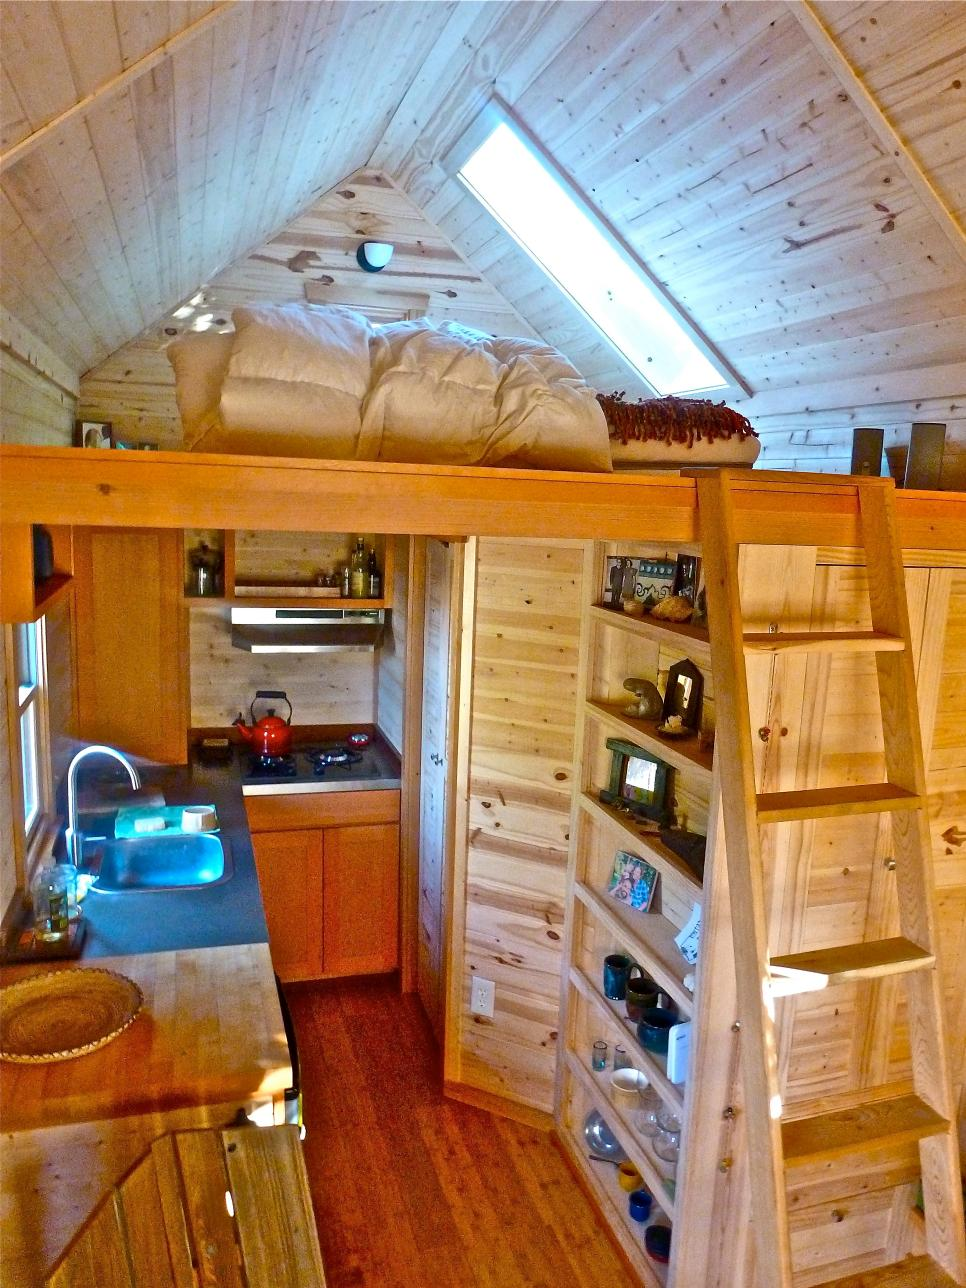 Marvelous Pictures Of 10 Extreme Tiny Homes From Hgtv Remodels Hgtv Largest Home Design Picture Inspirations Pitcheantrous